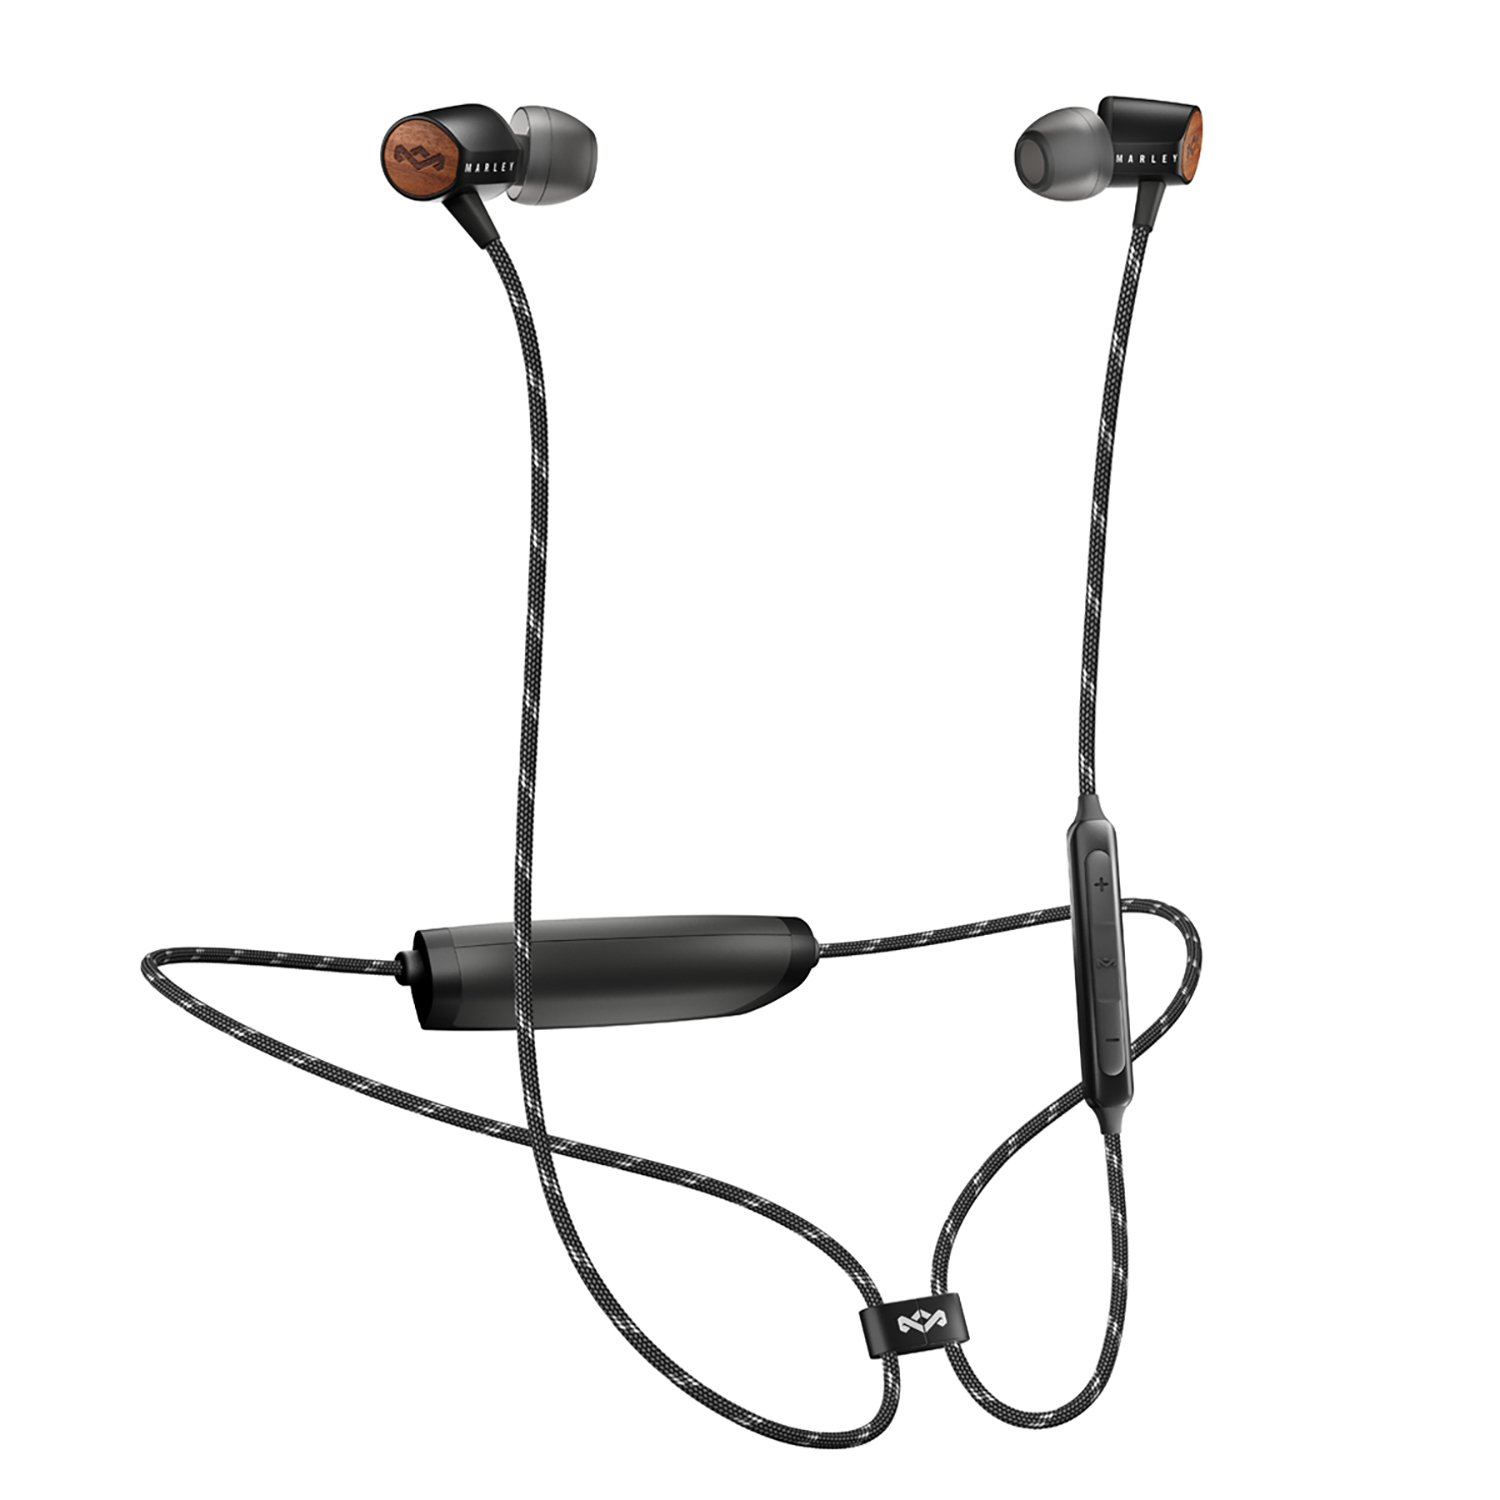 Marley Uplift 2 In-Ear Wireless Headphones - Black